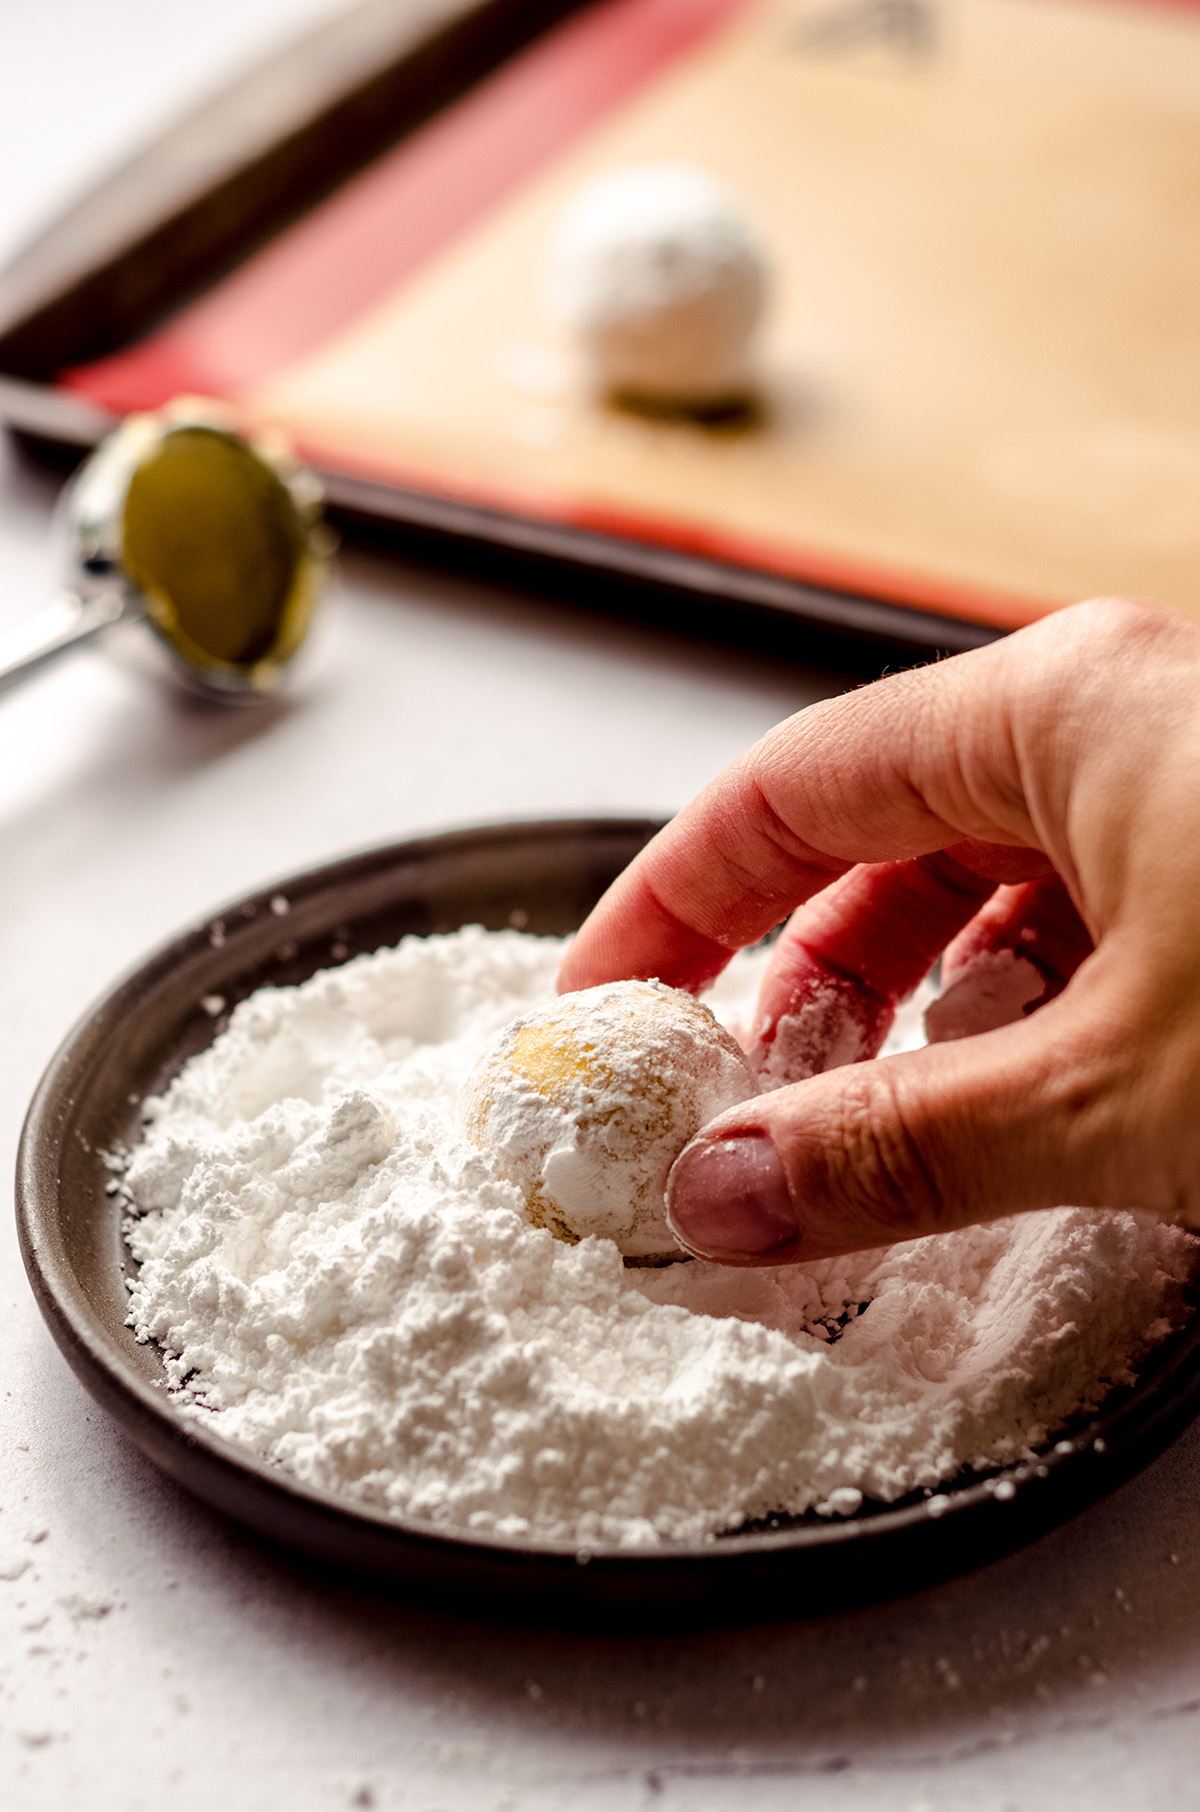 hand rolling a lemon crinkle cookie dough ball in powdered sugar